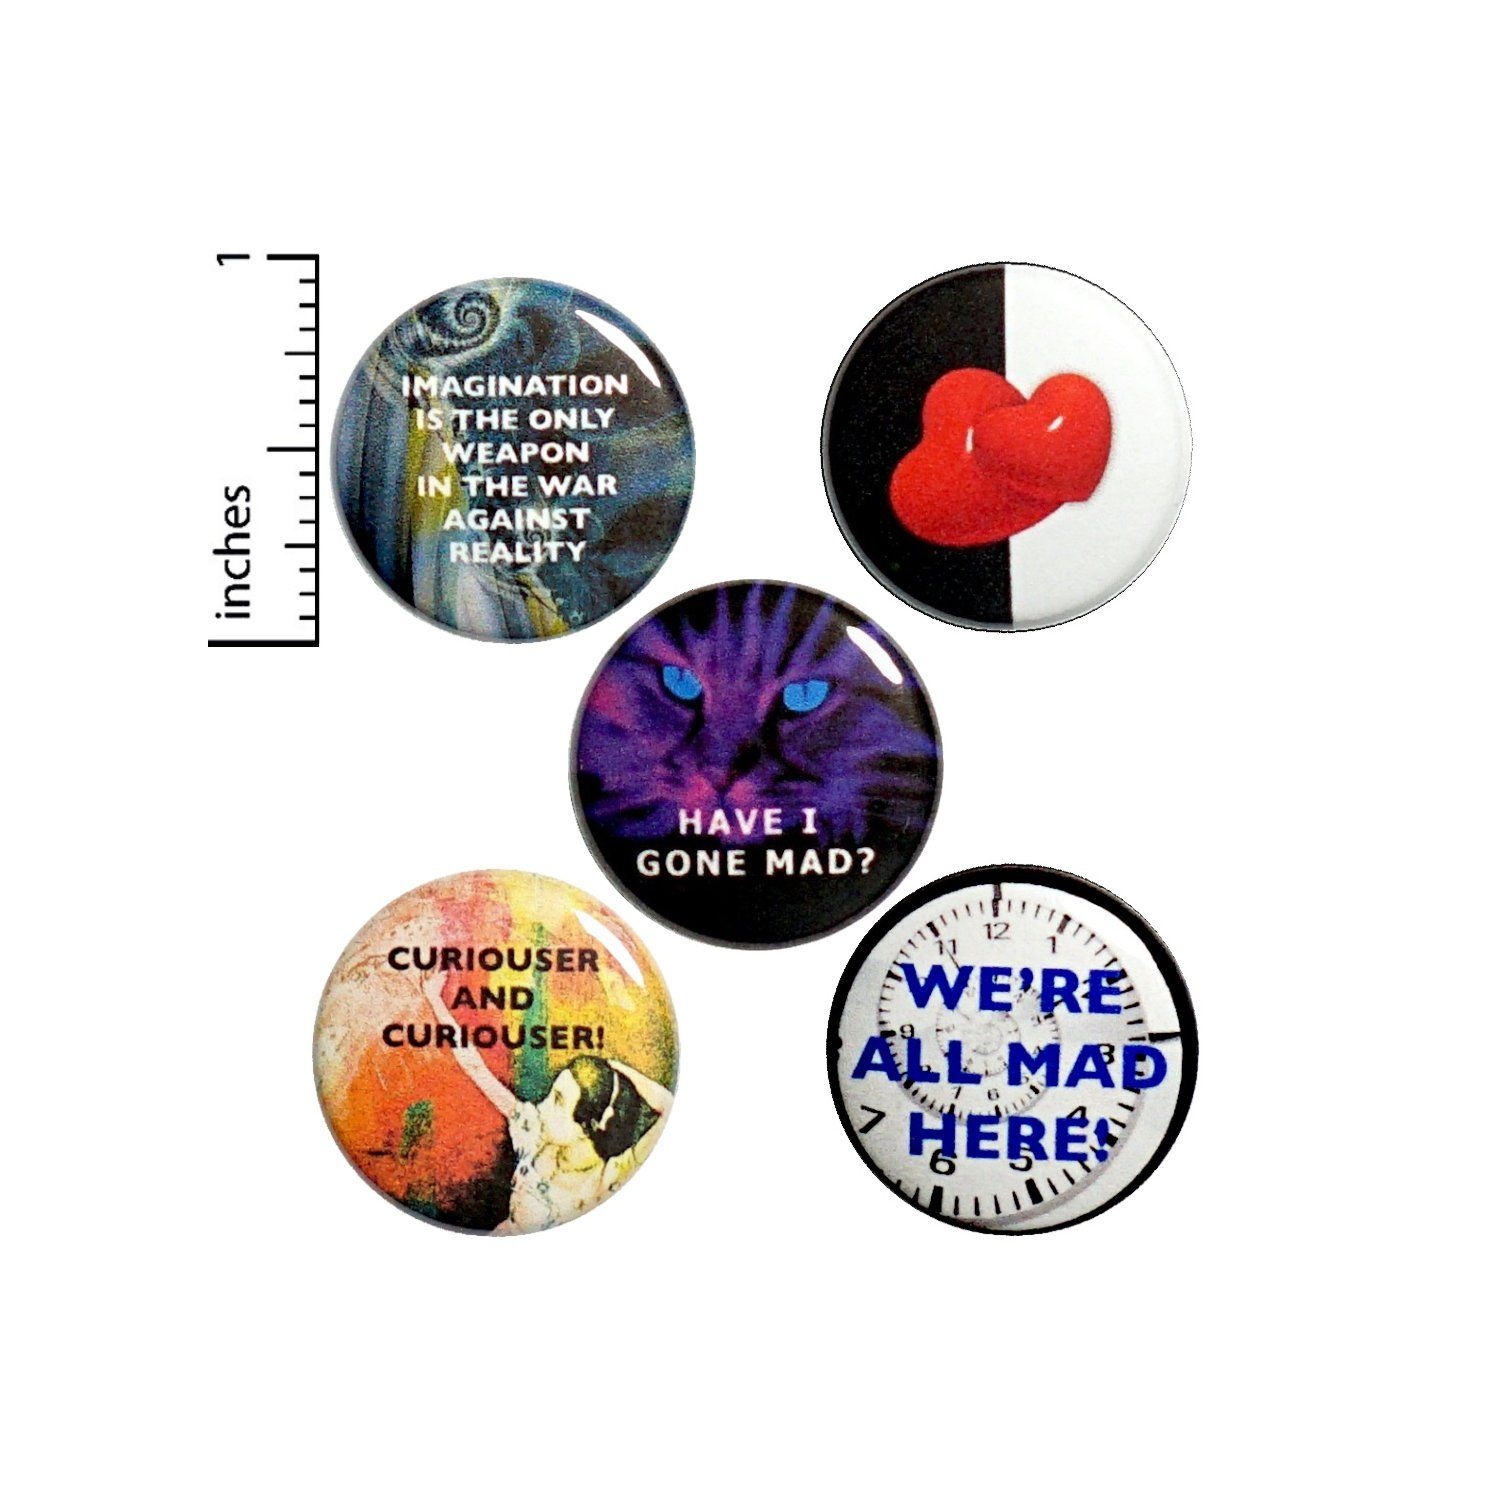 This Alice In Wonderland Button 5 Pack Is A Great Way To Celebrate One Of The Most Imaginative Stories Alice In Wonderland Edgy Gifts Alice In Wonderland Gifts